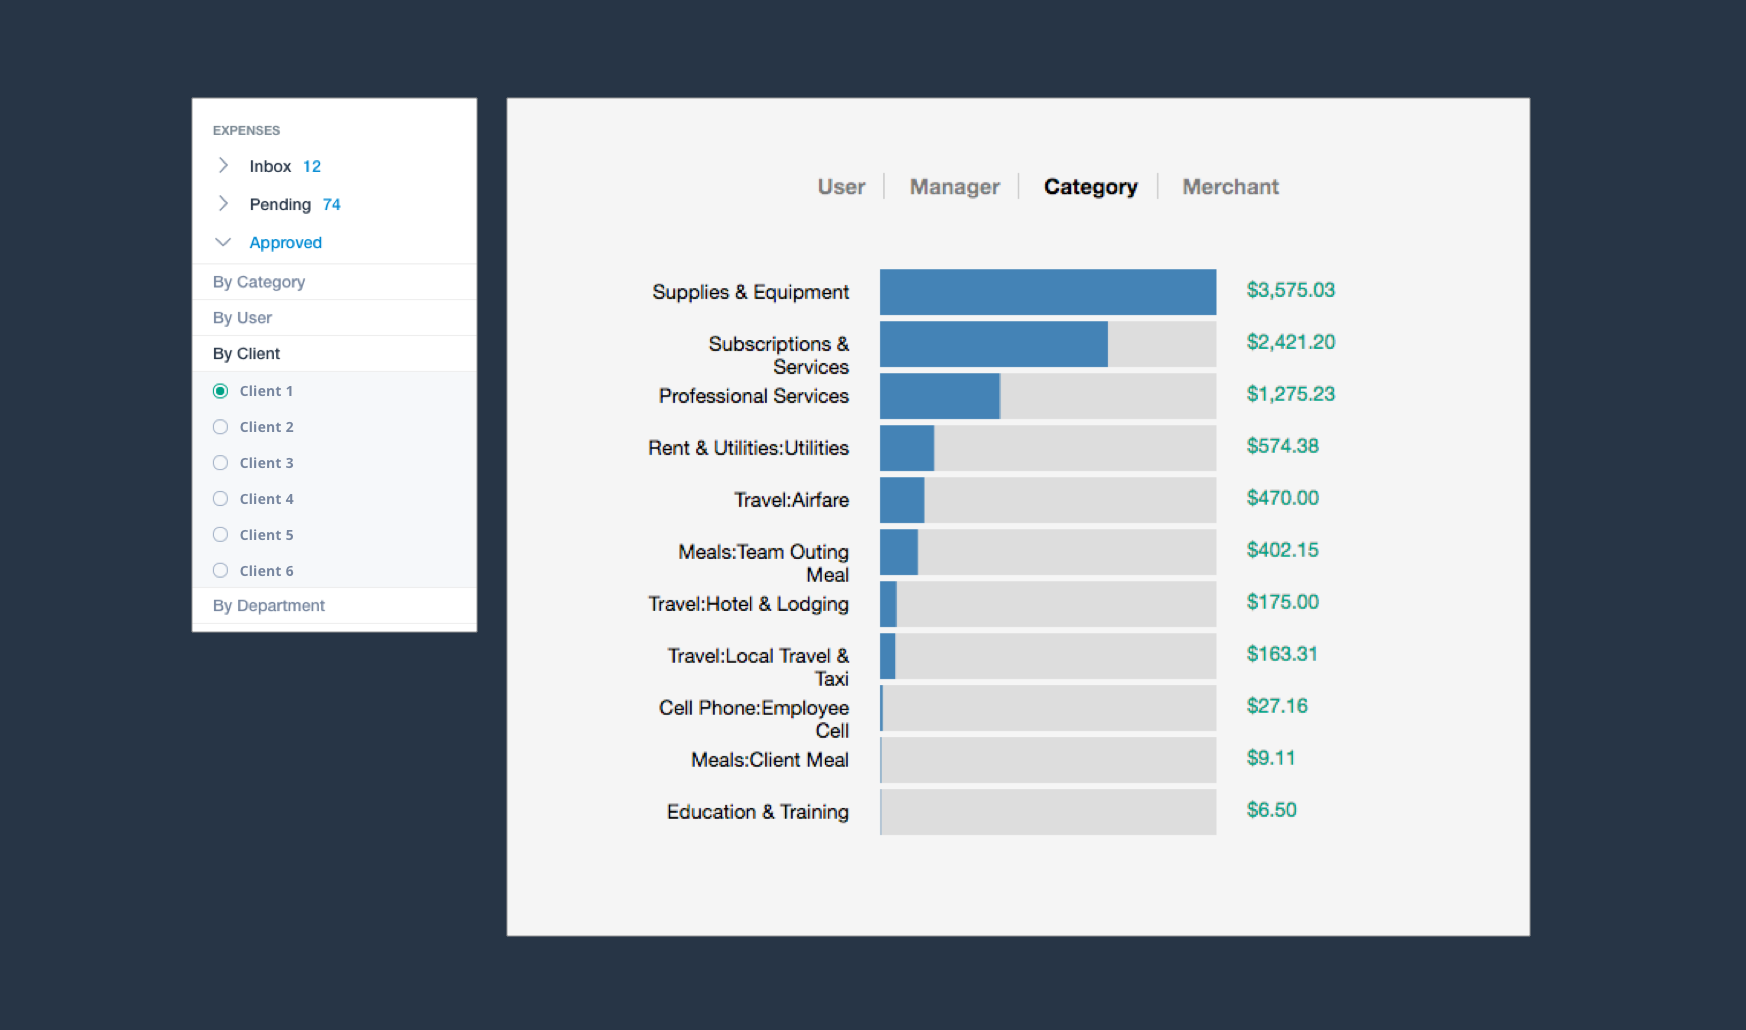 Use custom reports to speed up approval workflows, as well as analyze spending to find helpful insights when building budgets and reporting on business metrics.